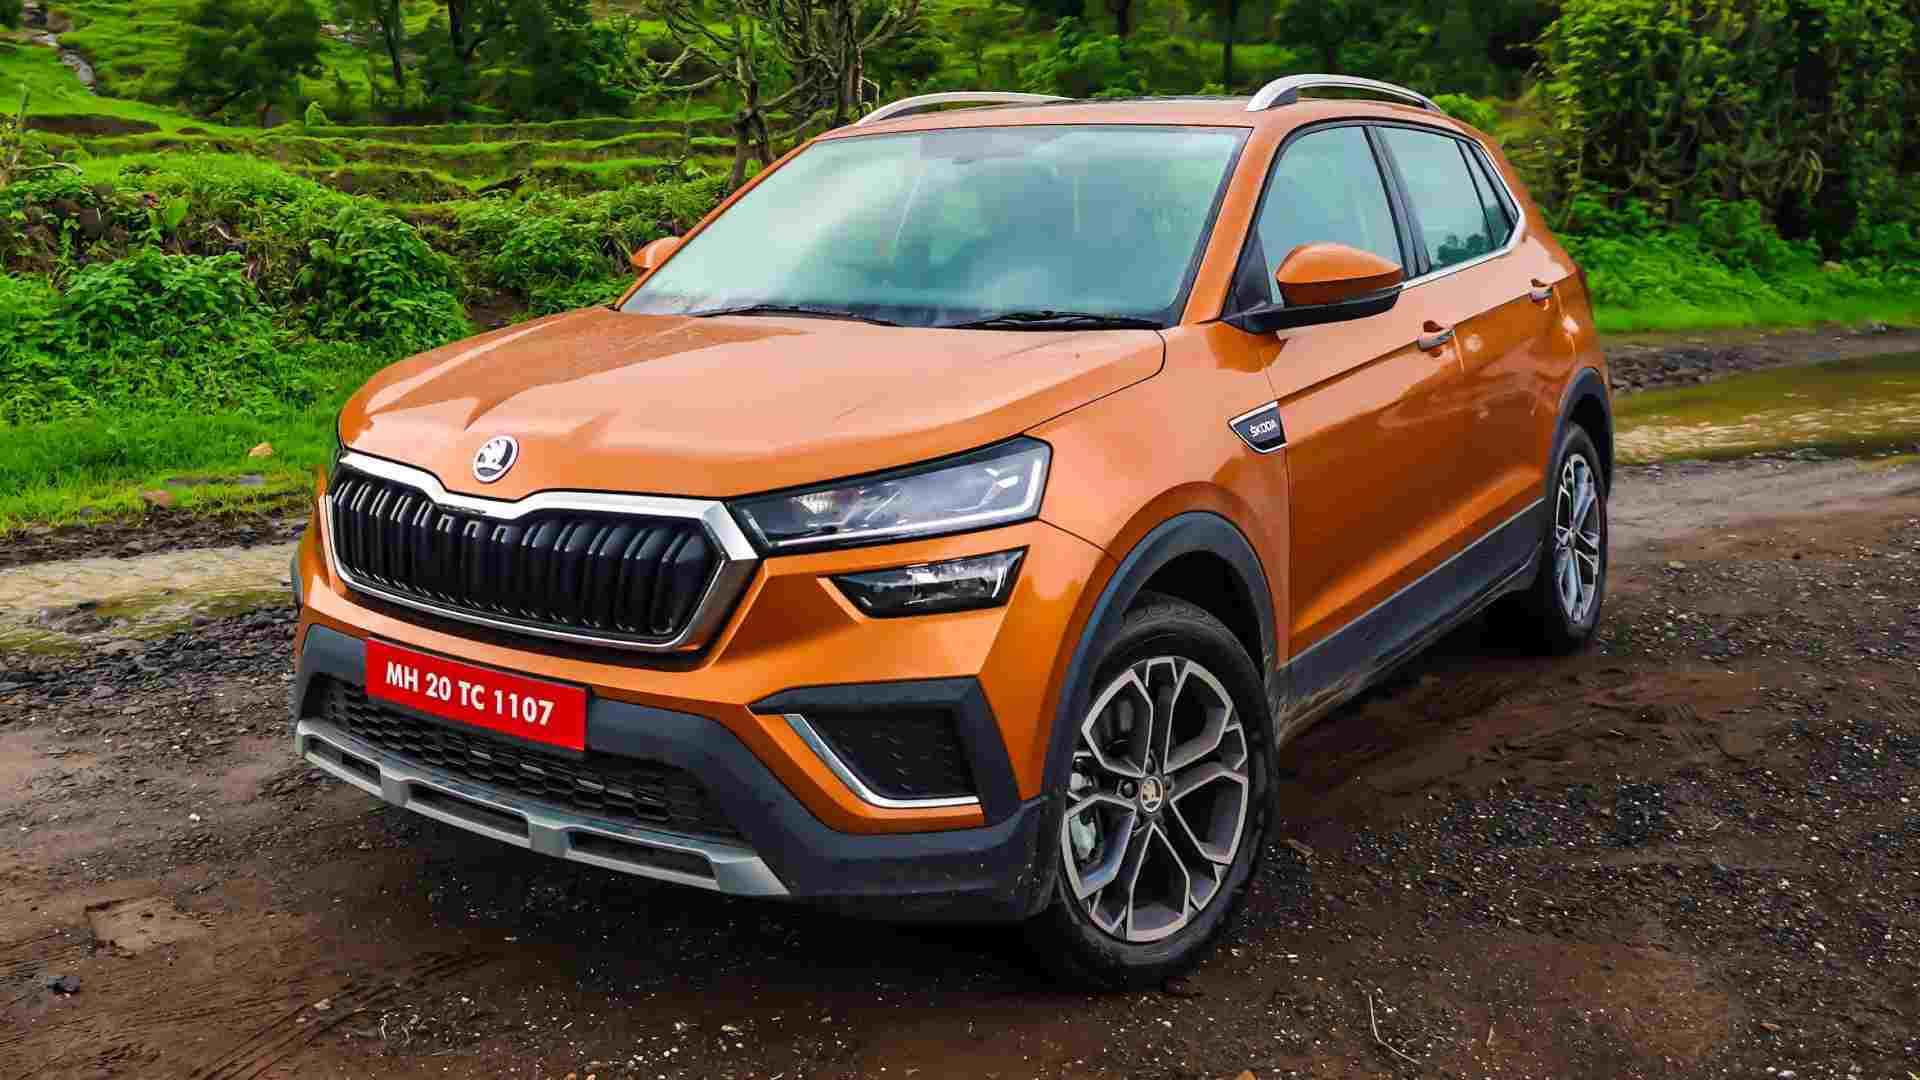 The Skoda Kushaq price range starts at Rs 10.50 lakh, and goes all the way up to Rs 17.60 lakh (ex-showroom). Image: Skoda